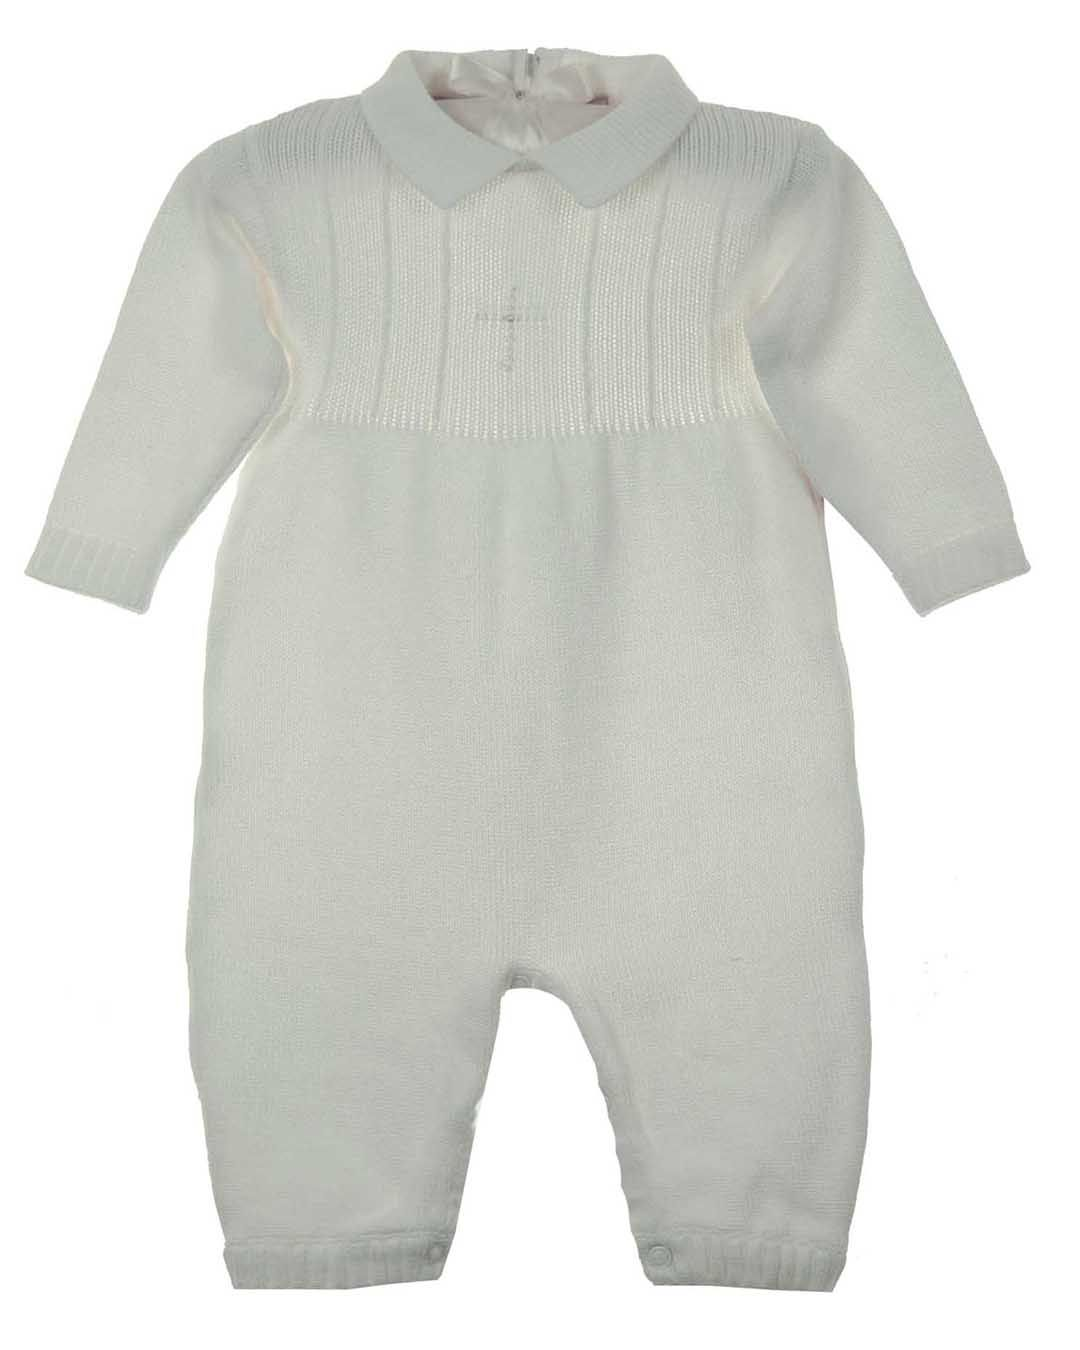 ee6036a04 The Boss s Christening outfit! Found it at Grammie s Attic after an ...